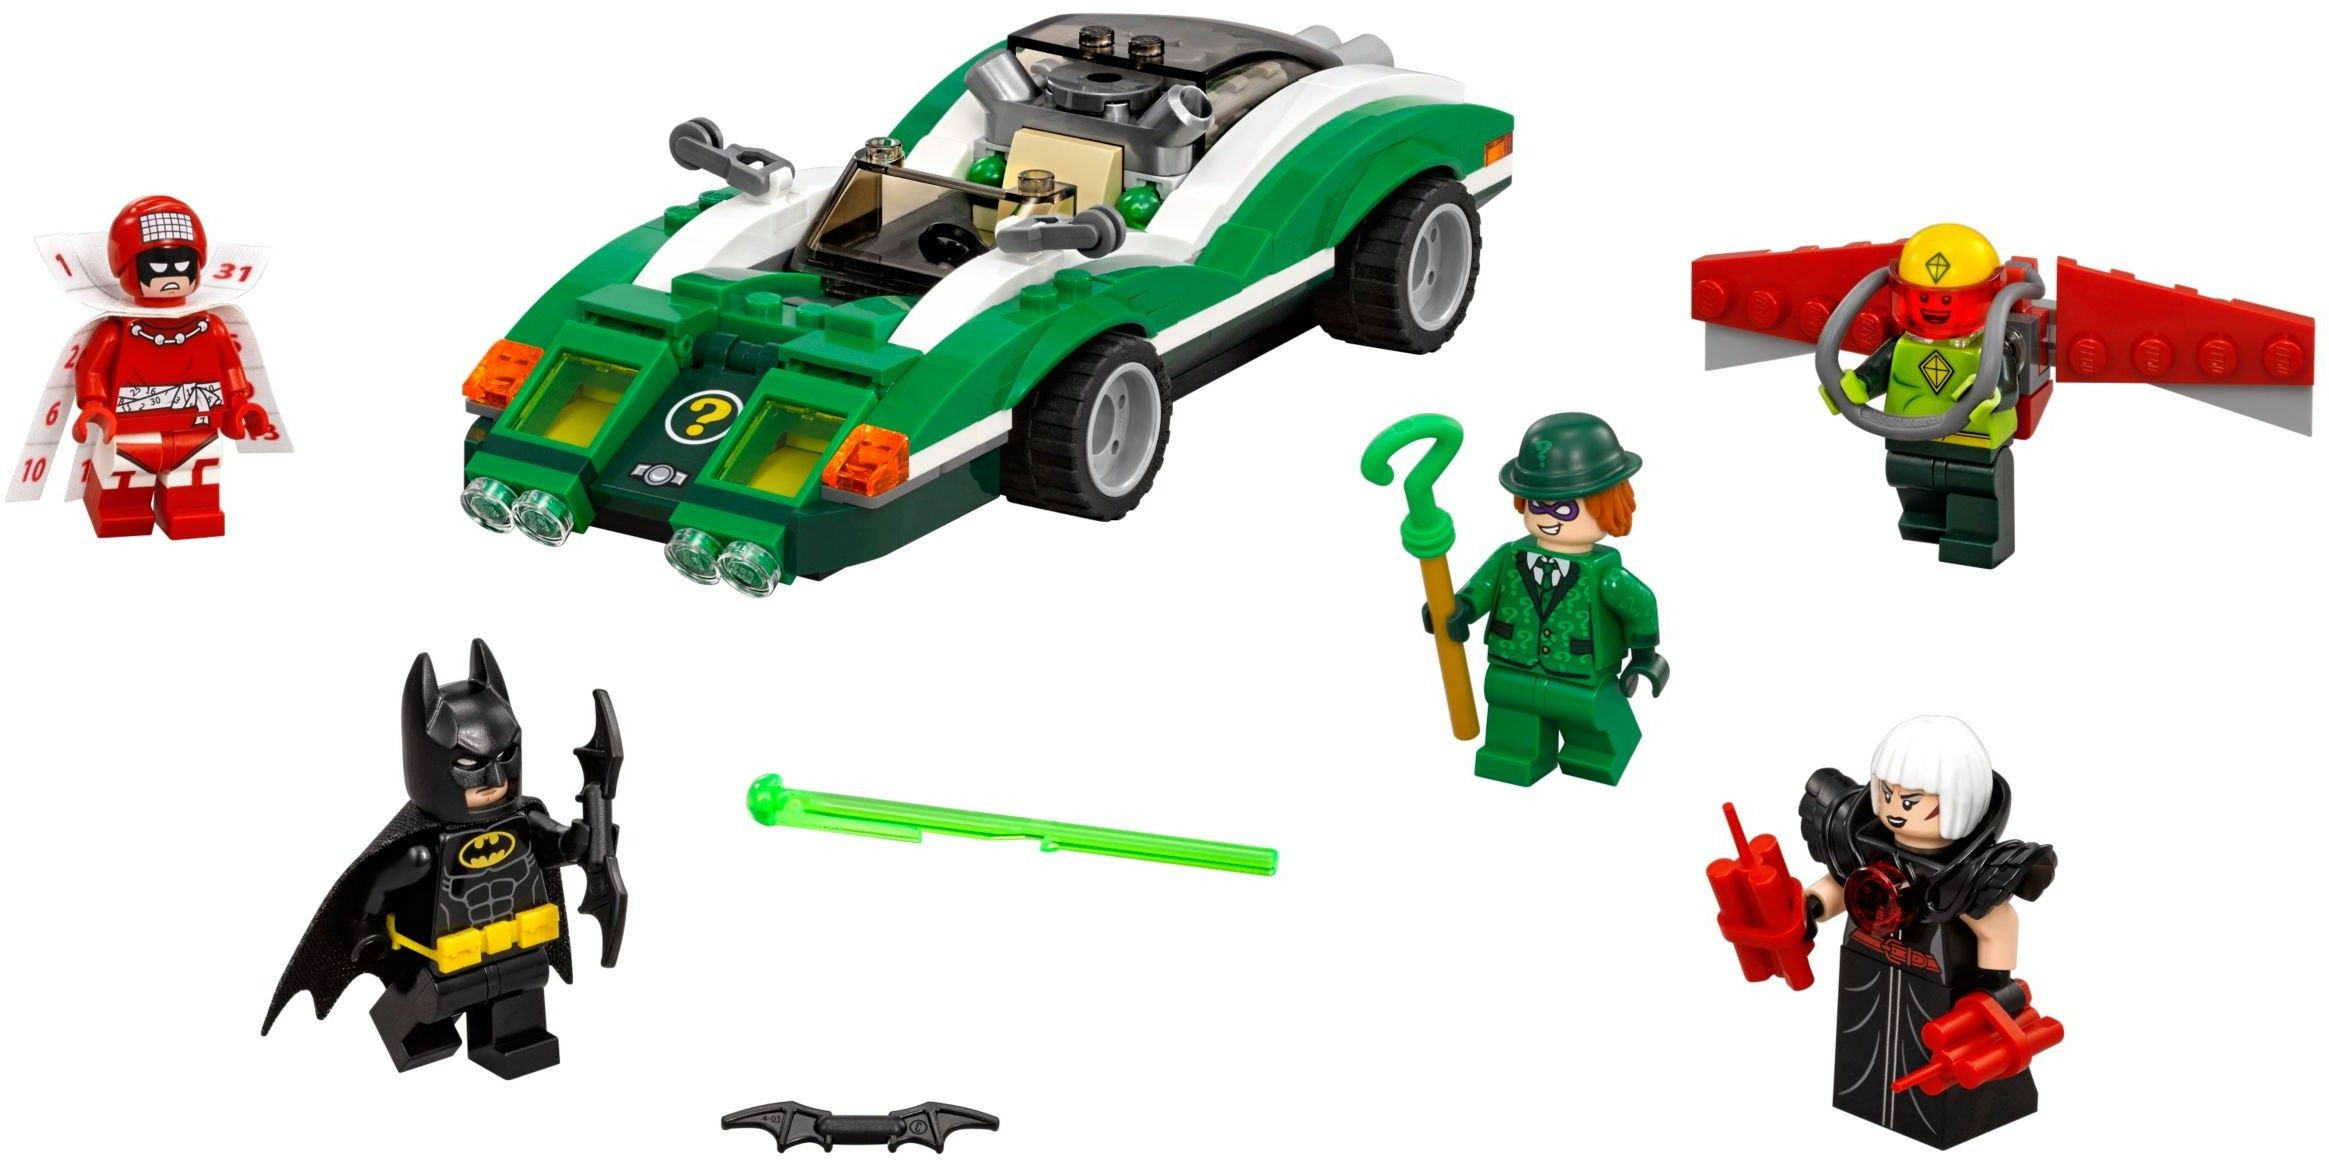 709031 The Riddler Riddle Racer Lego batman movie